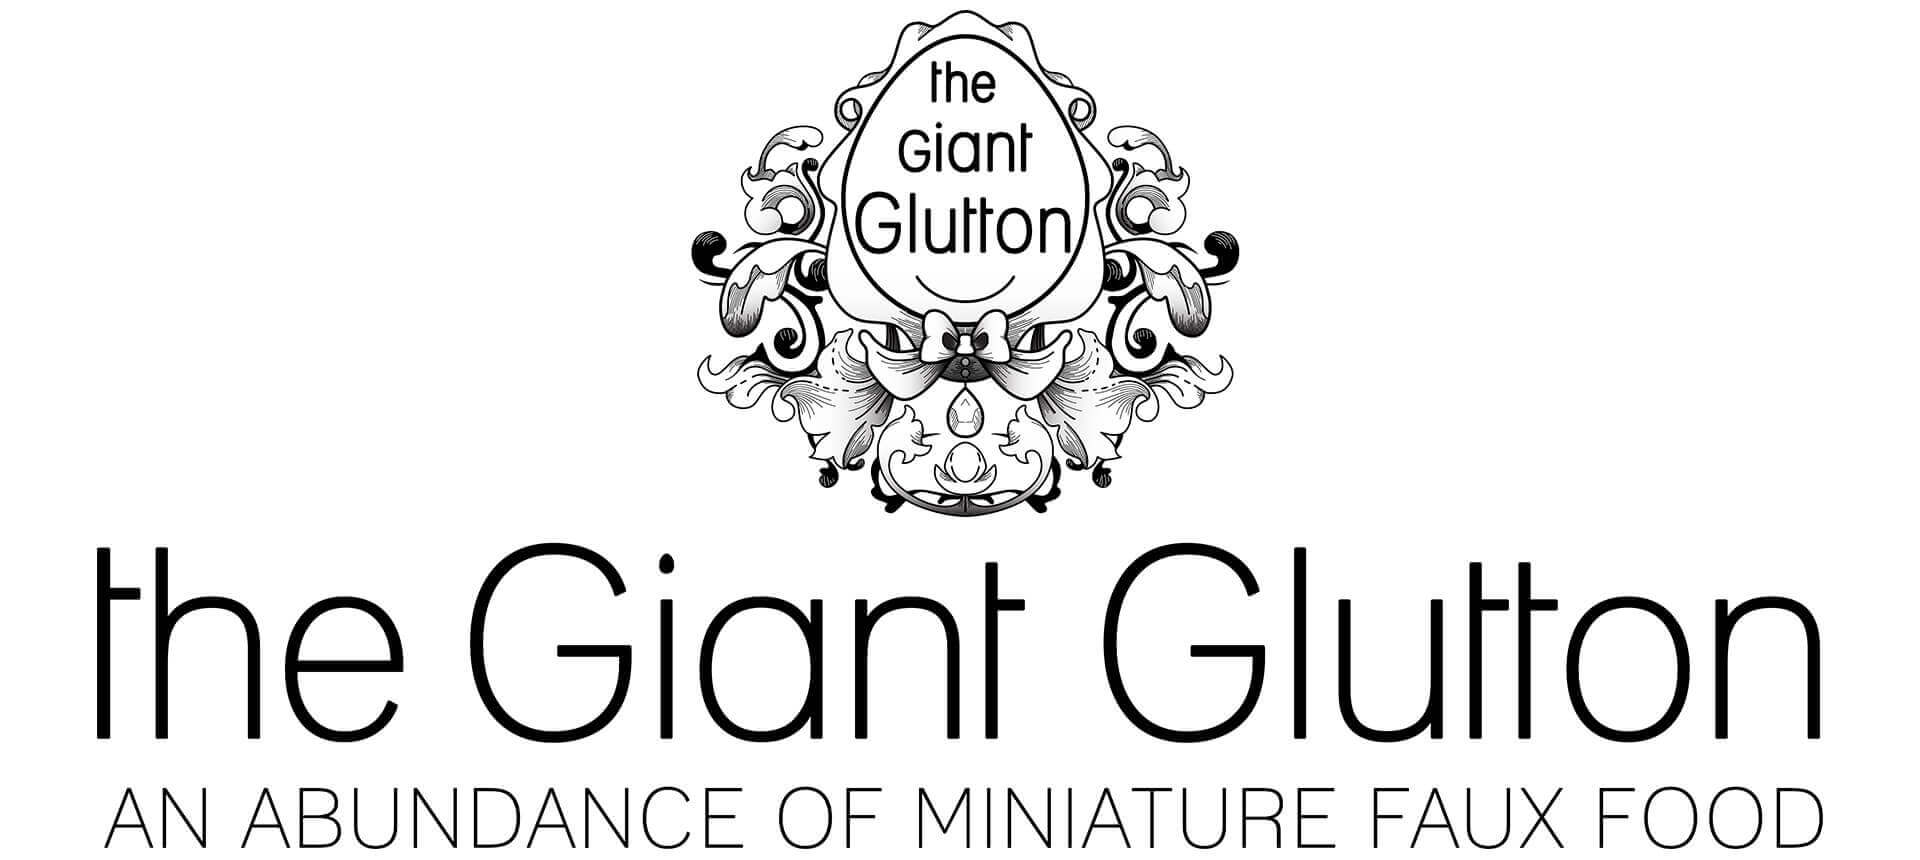 The Giant Glutton logo design